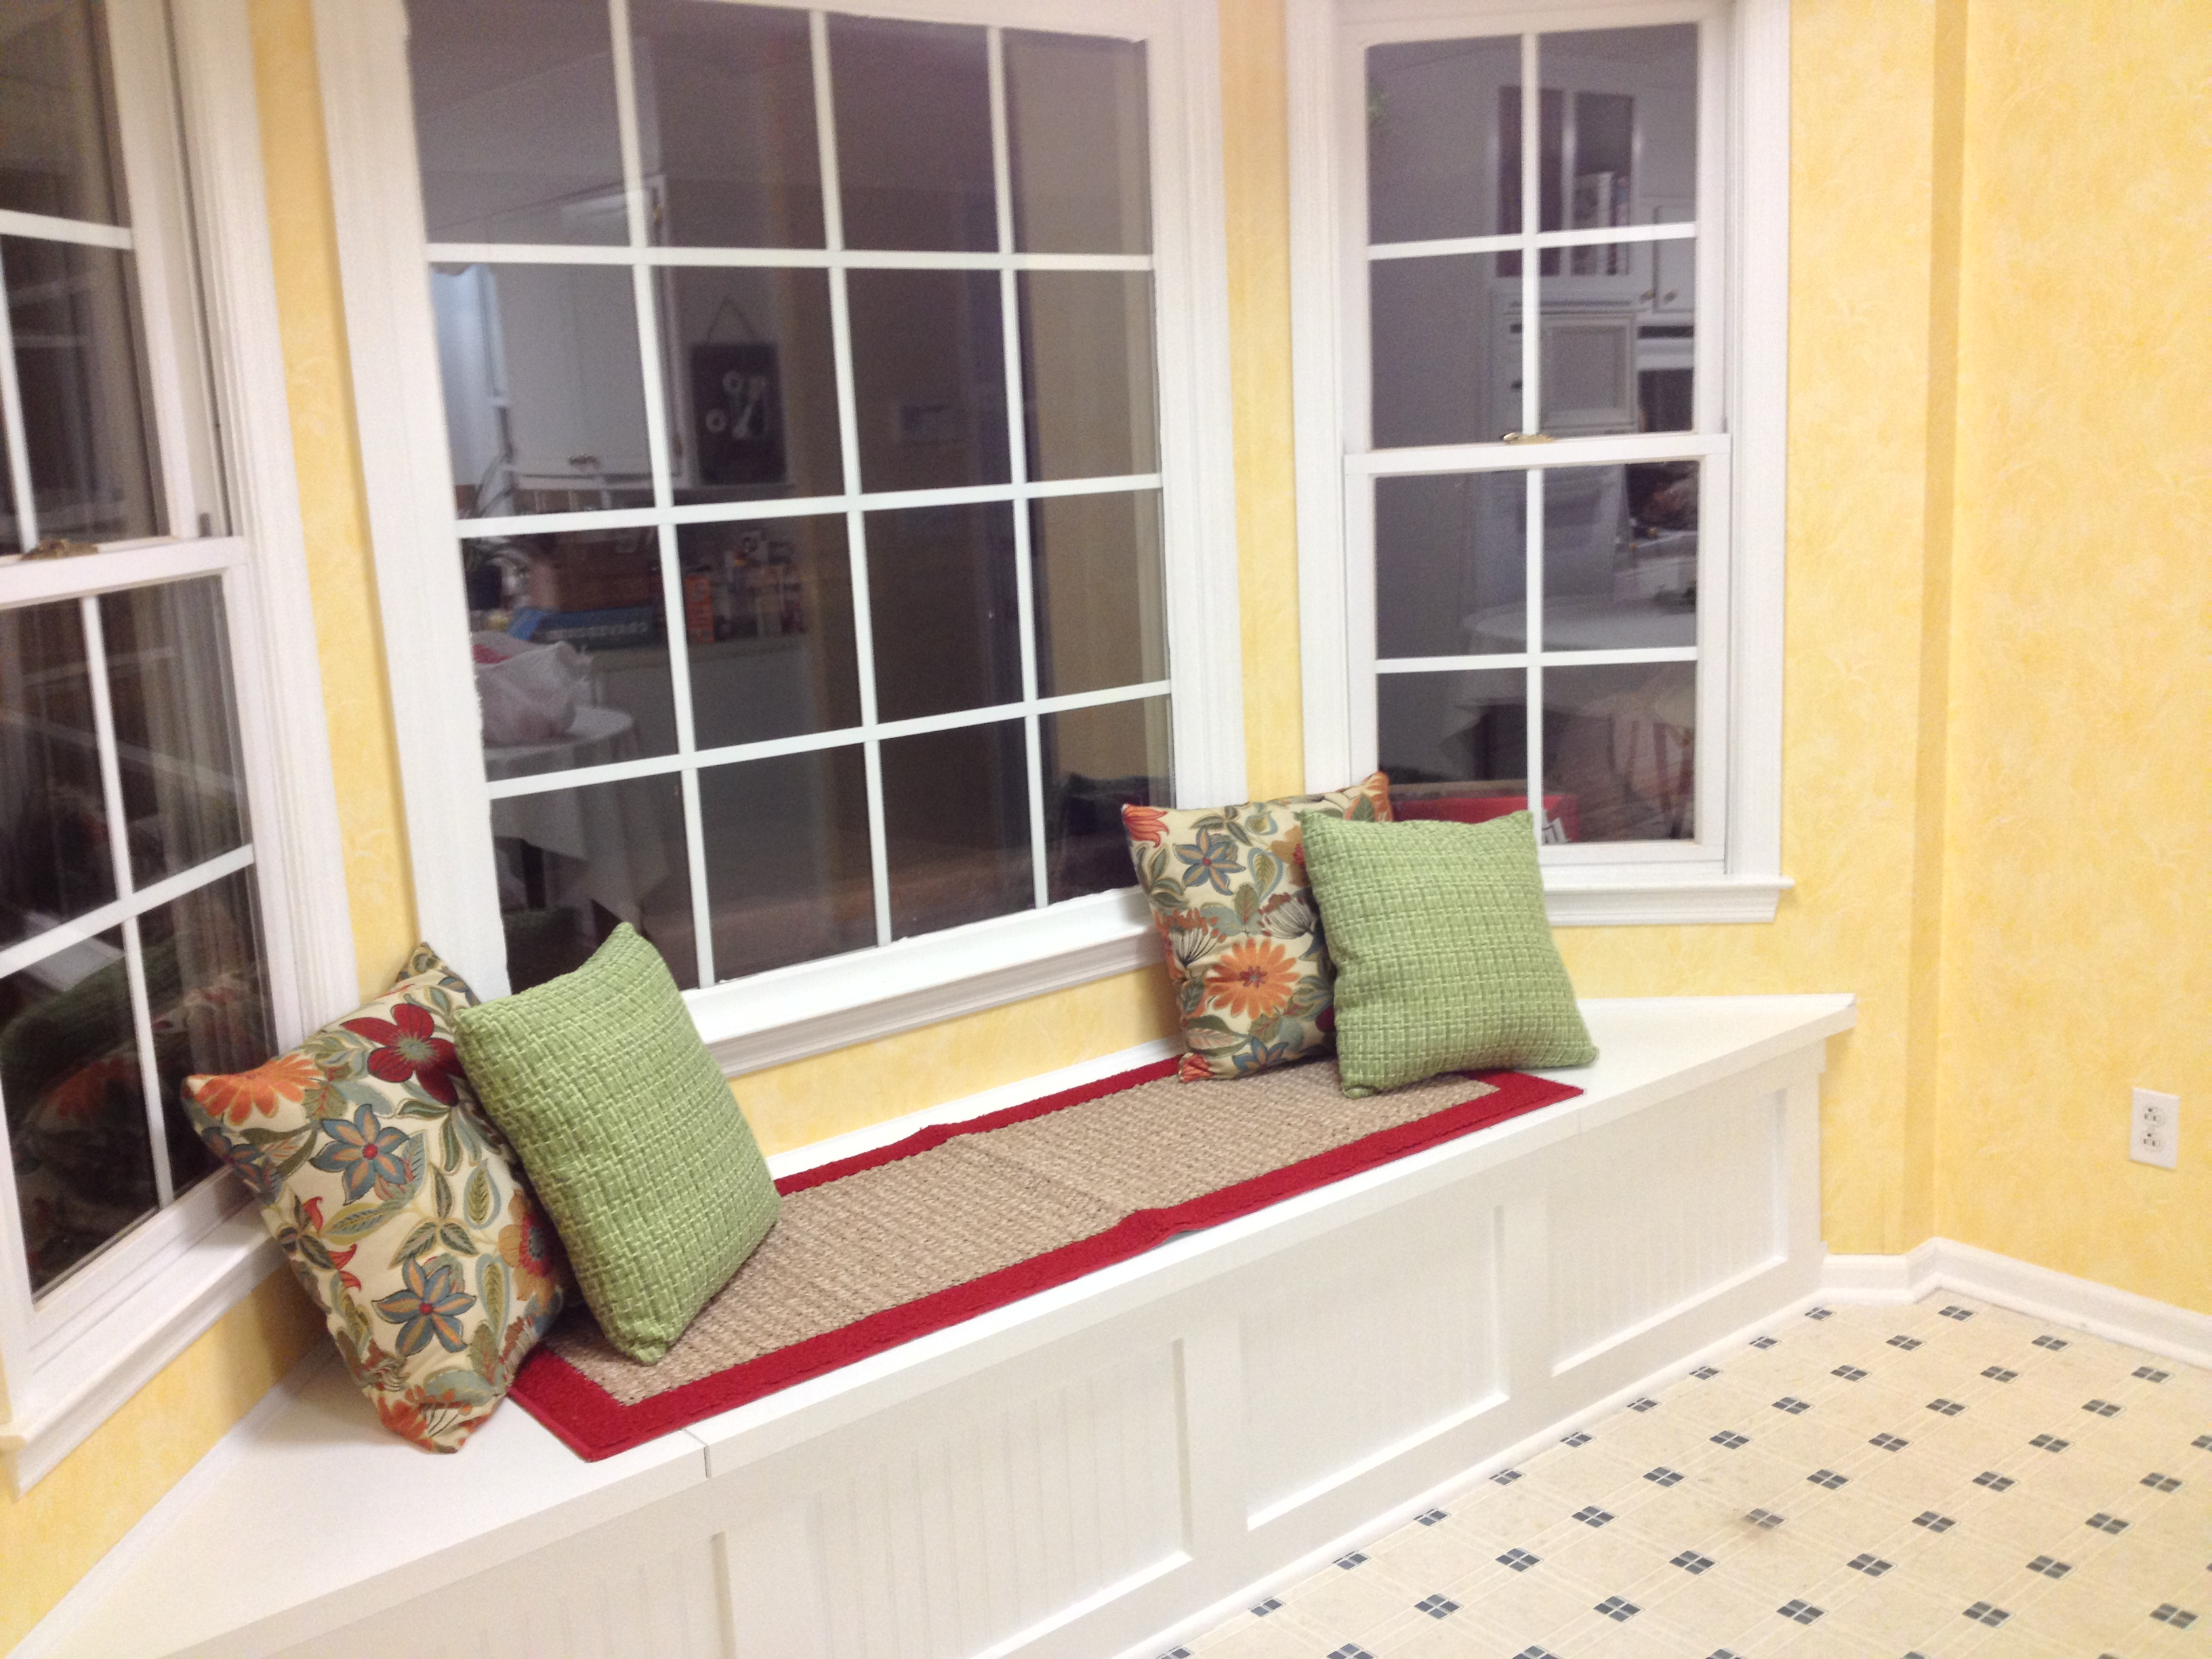 Build a Window Seat with Storage